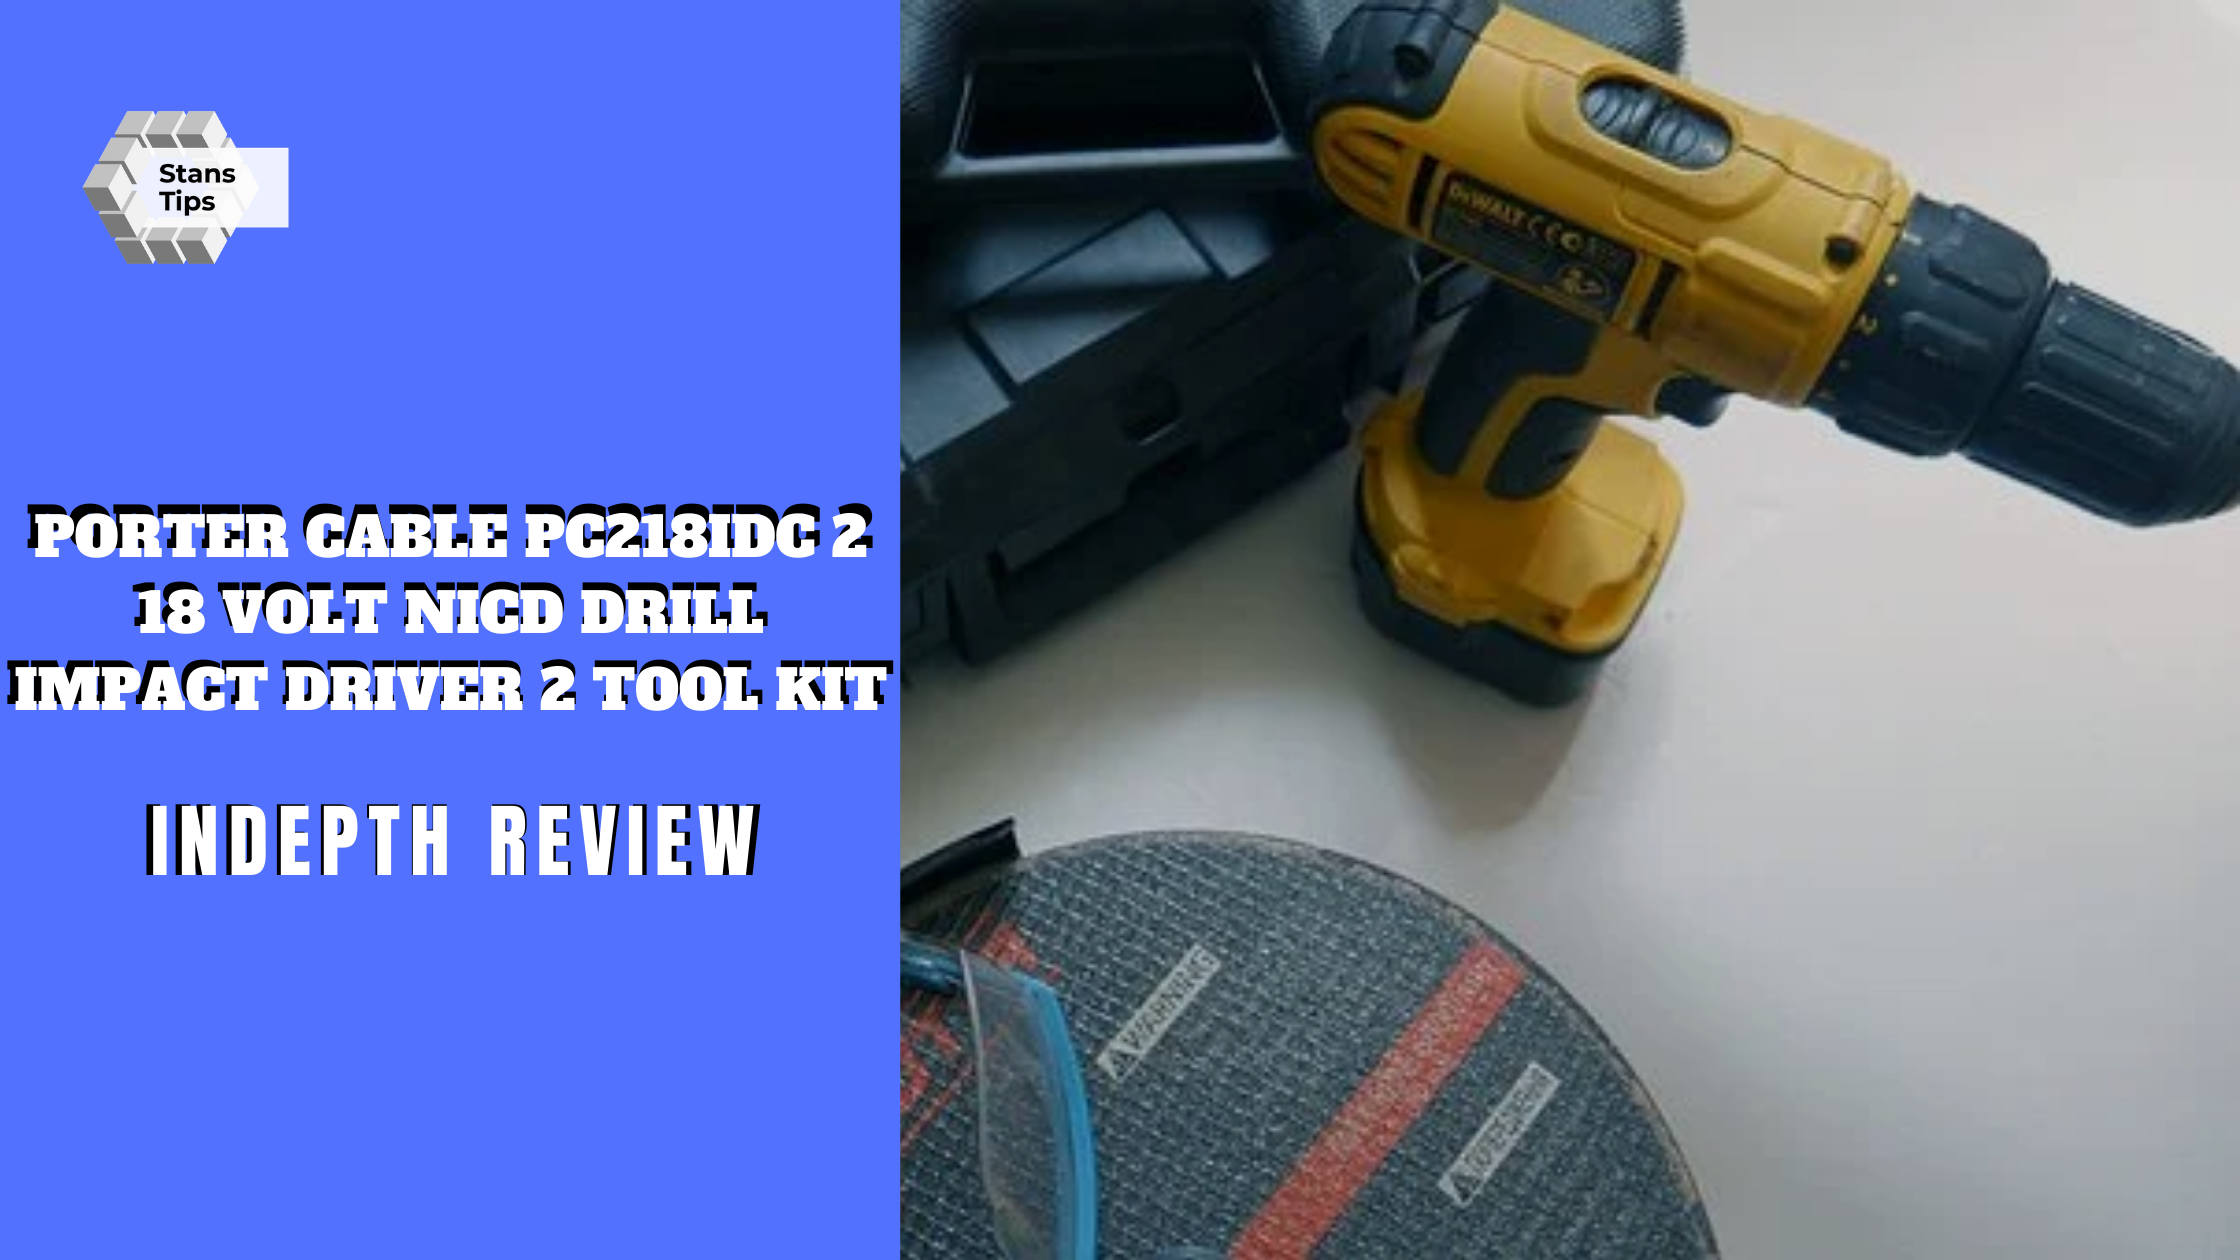 Porter cable pc218idc 2 18 volt nicd drill impact driver 2 tool kit review